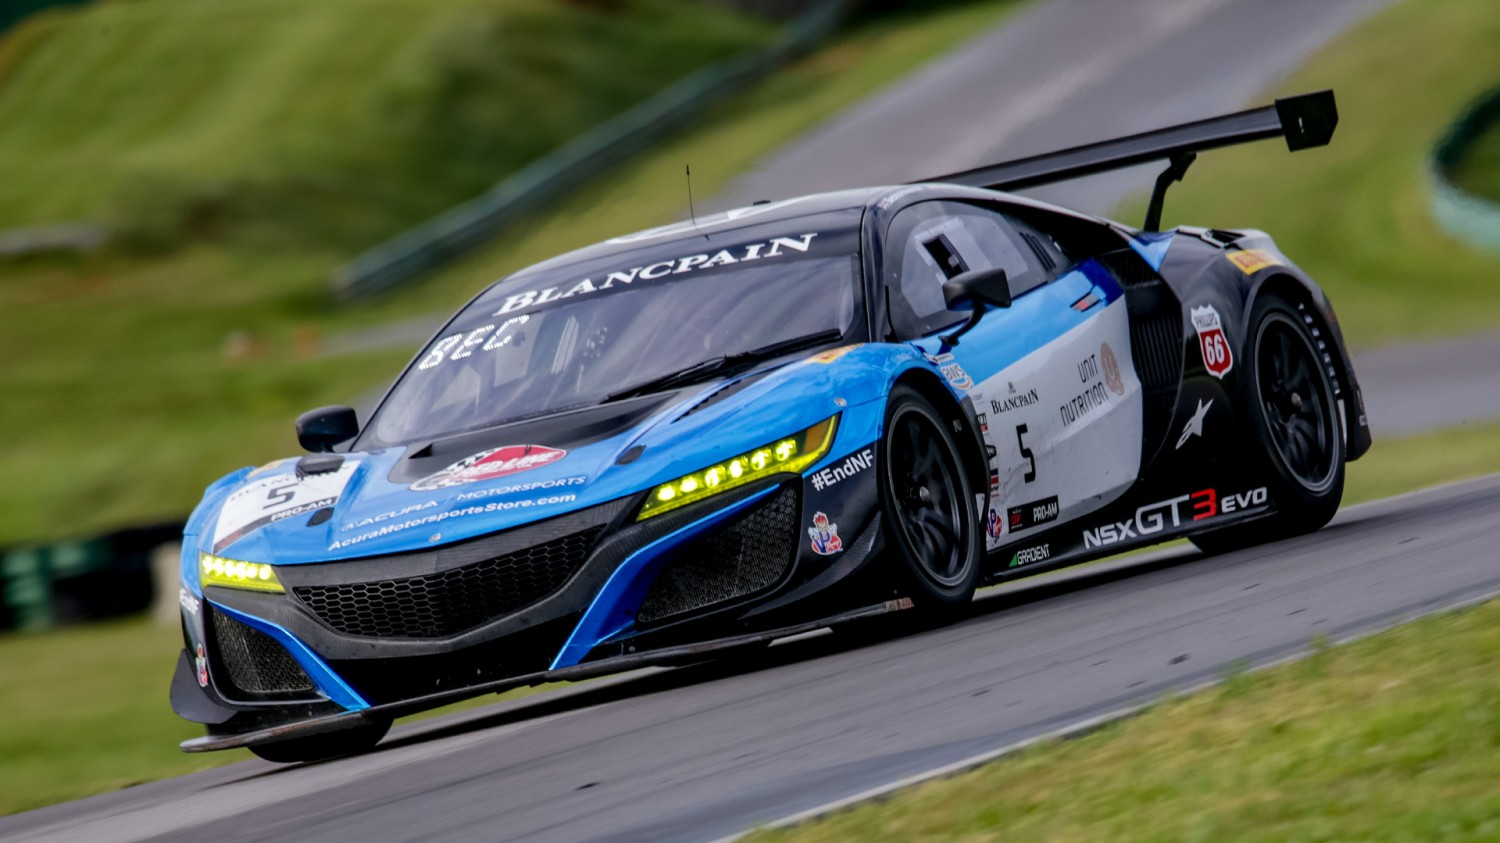 Bechtolsheimer Puts Pro-Am Acura Ahead in Wet Friday Afternoon Practice